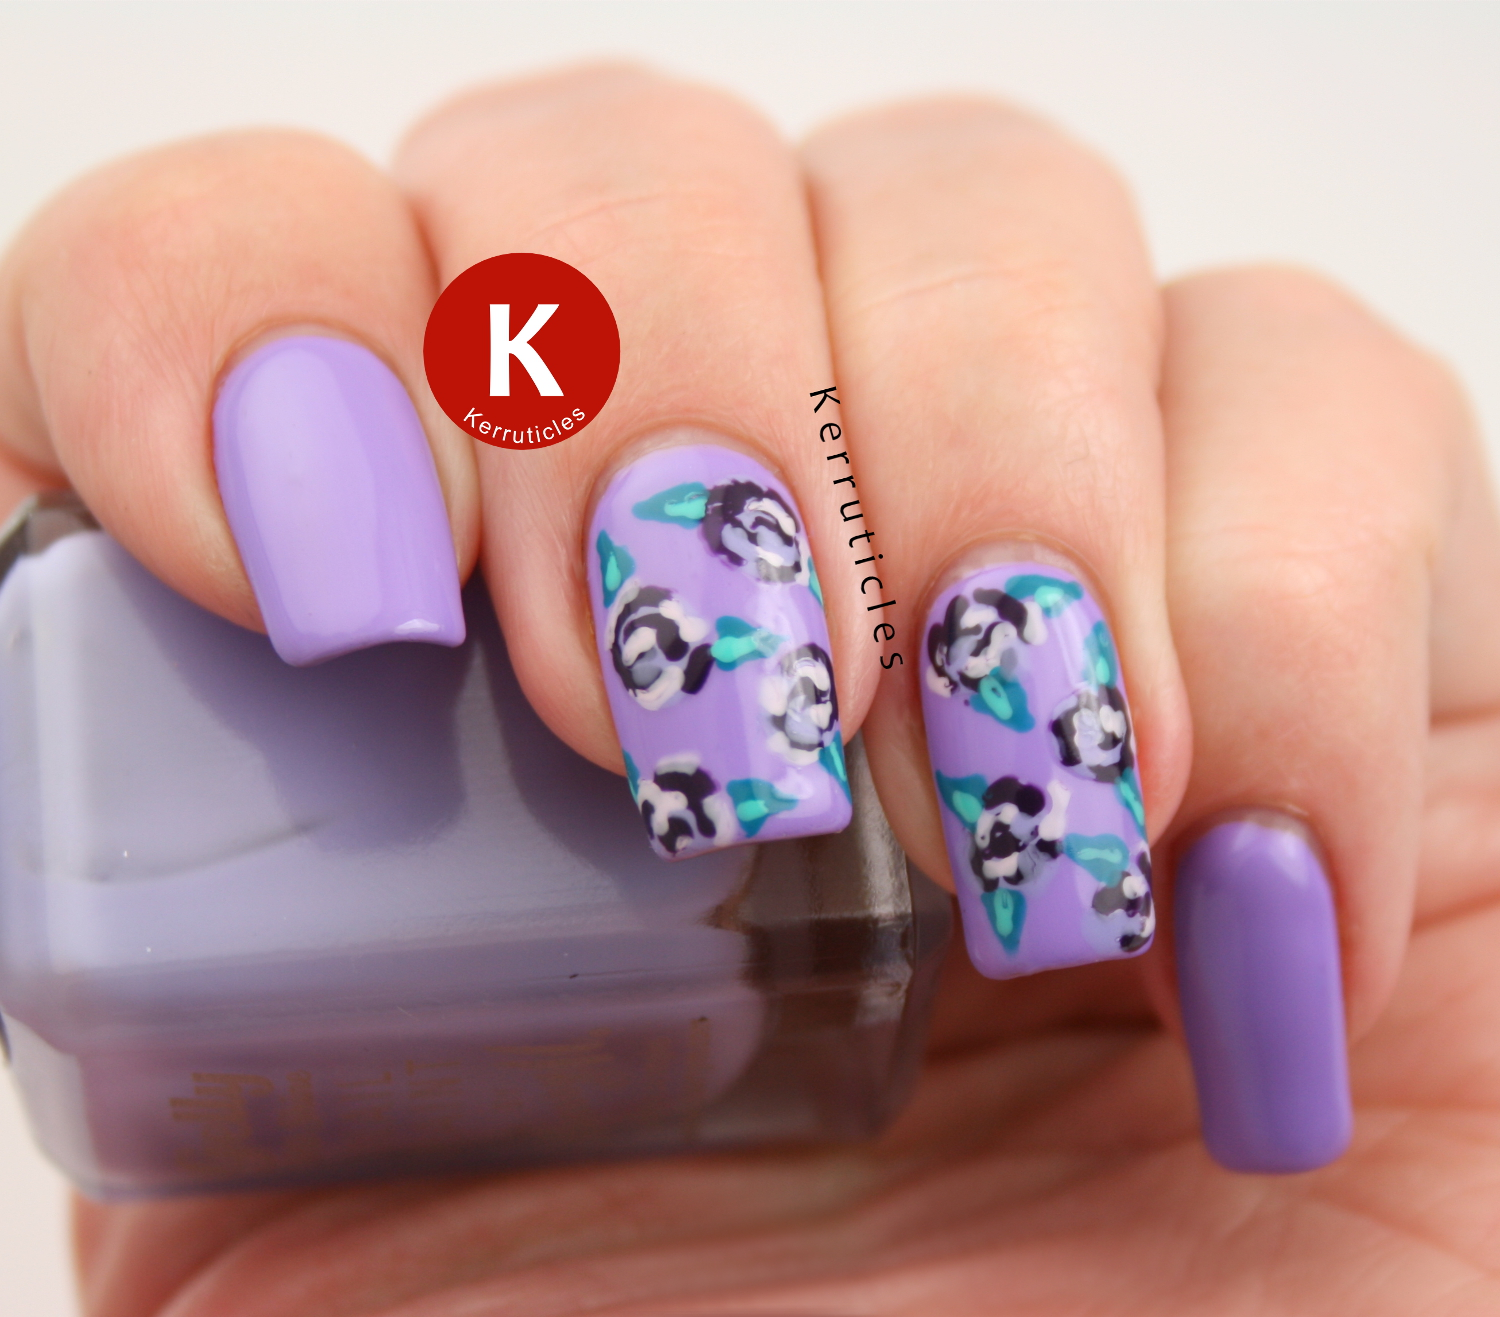 Lilac and teal roses using Barry M polishes on a base of Bundle Monster Voodoo Lounge